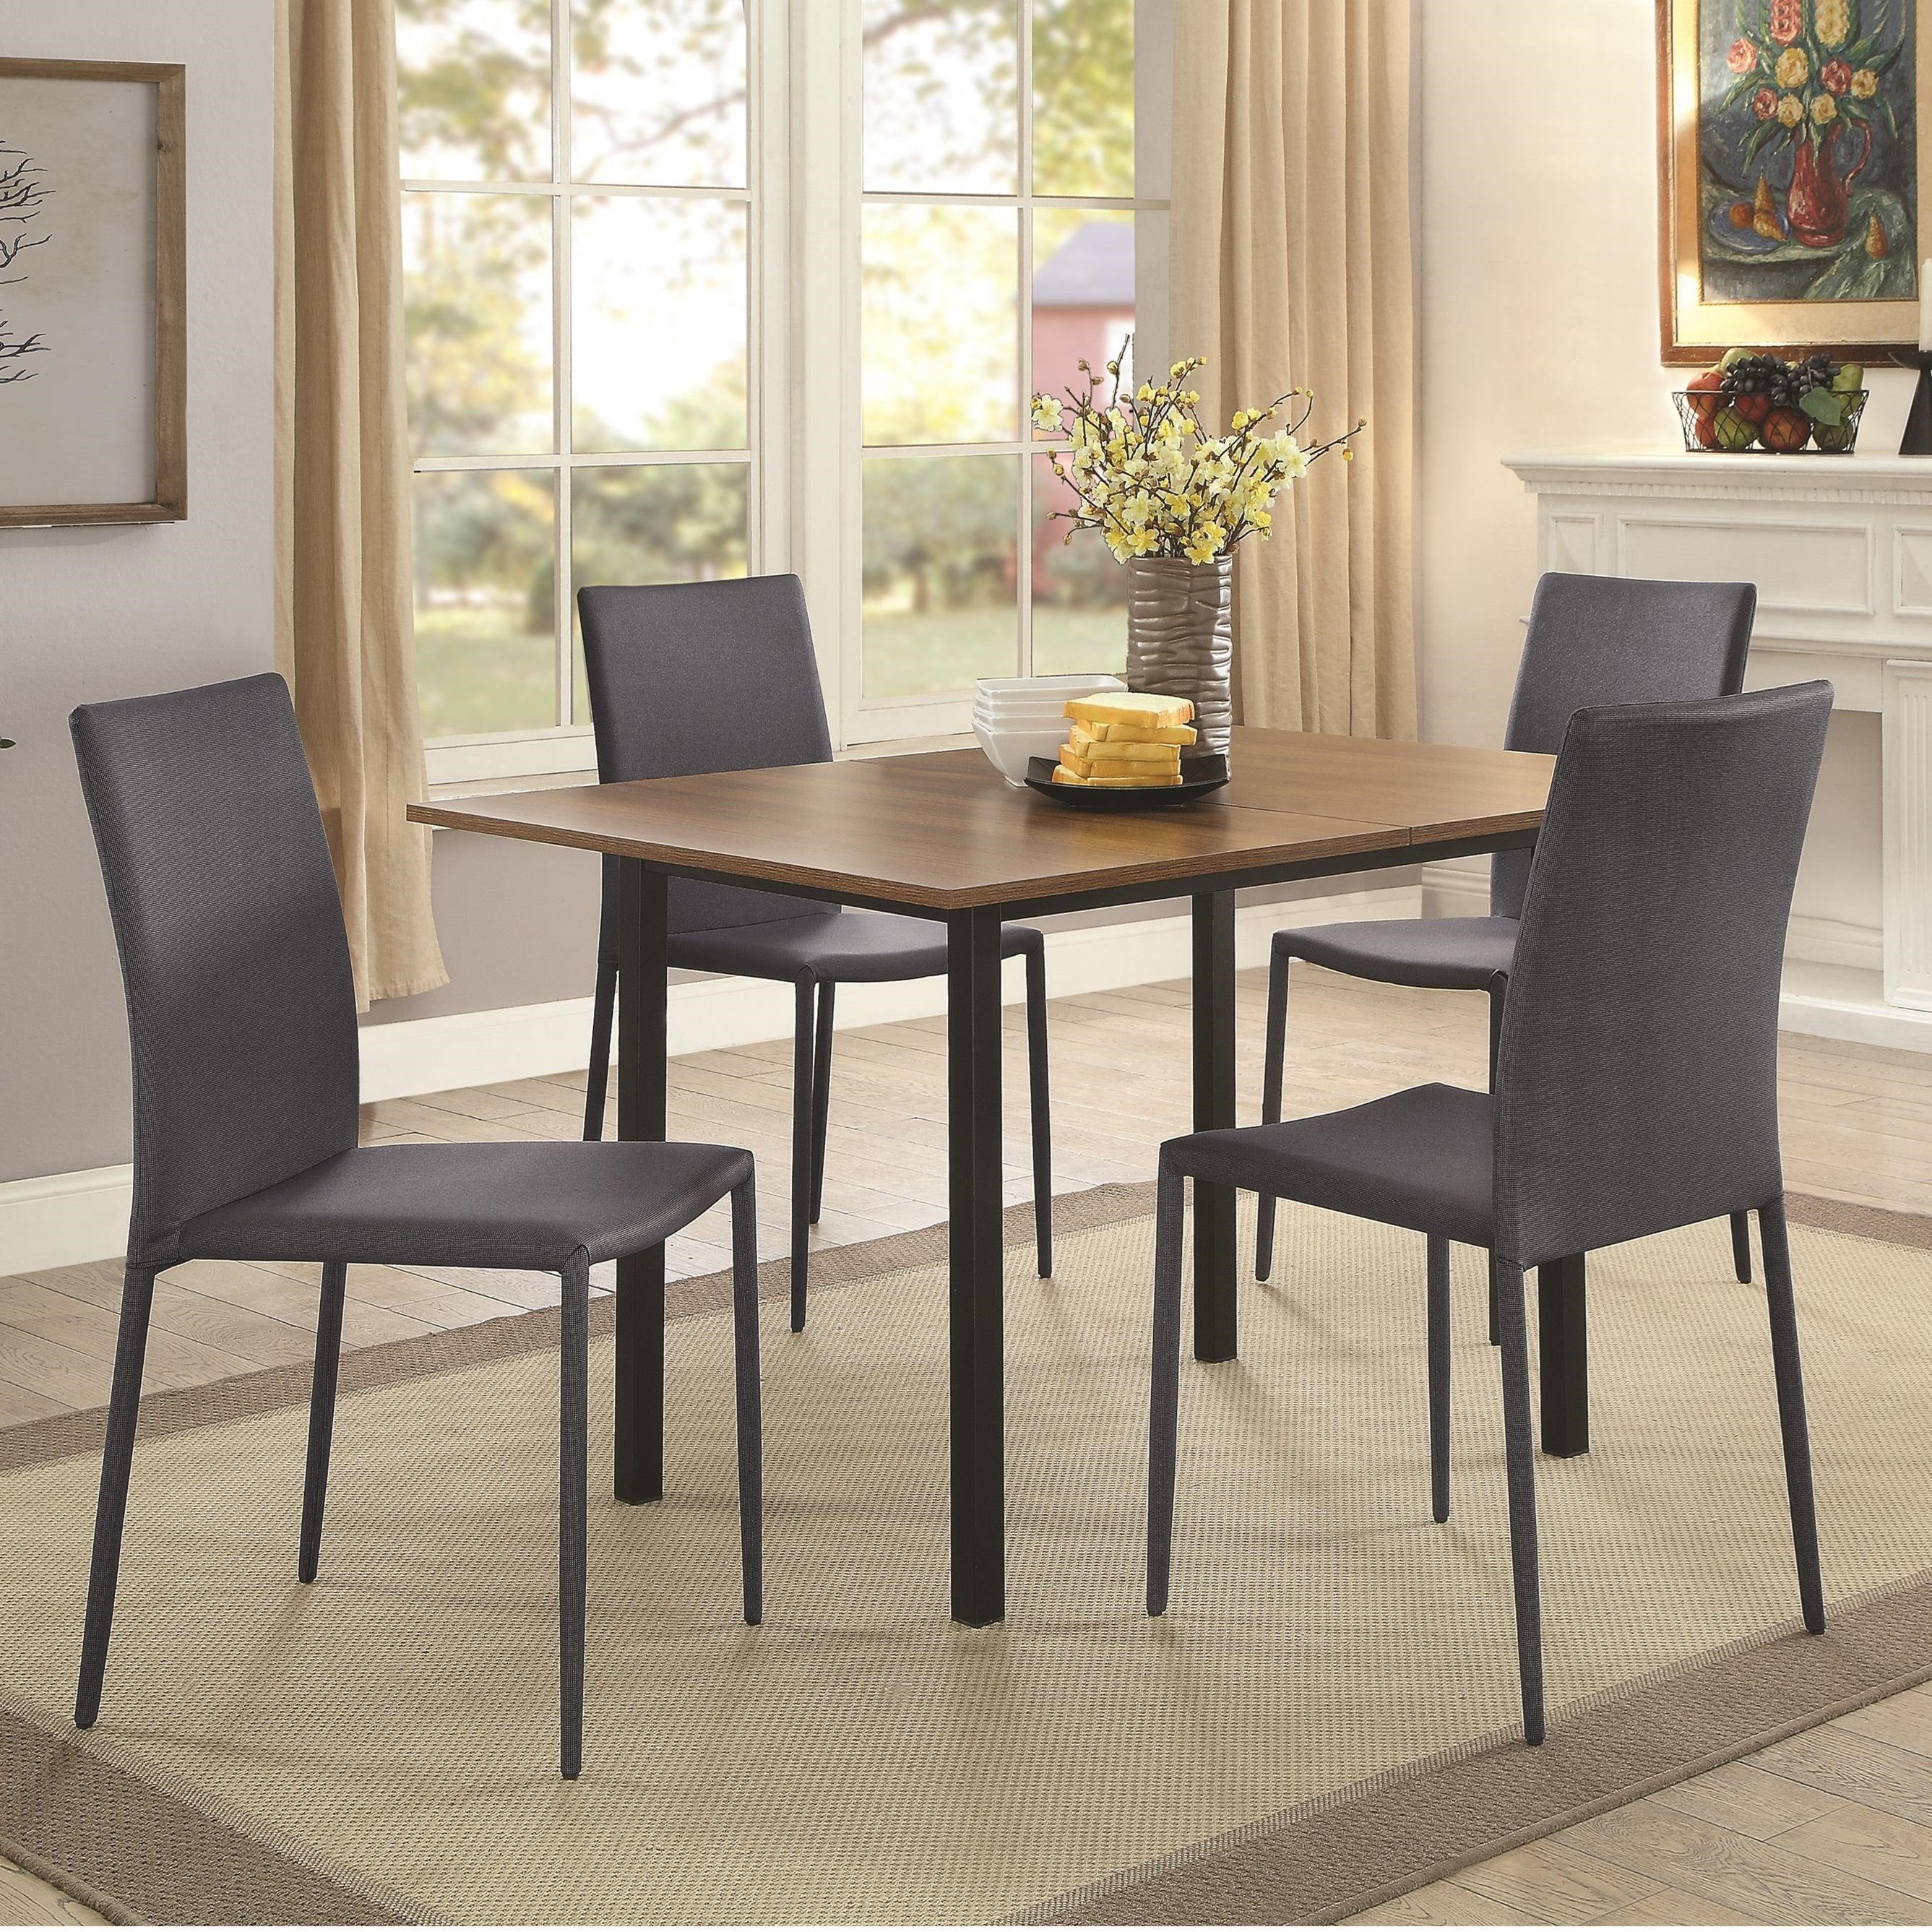 Coaster Adler Space Saving 5 Piece Dining Table Set